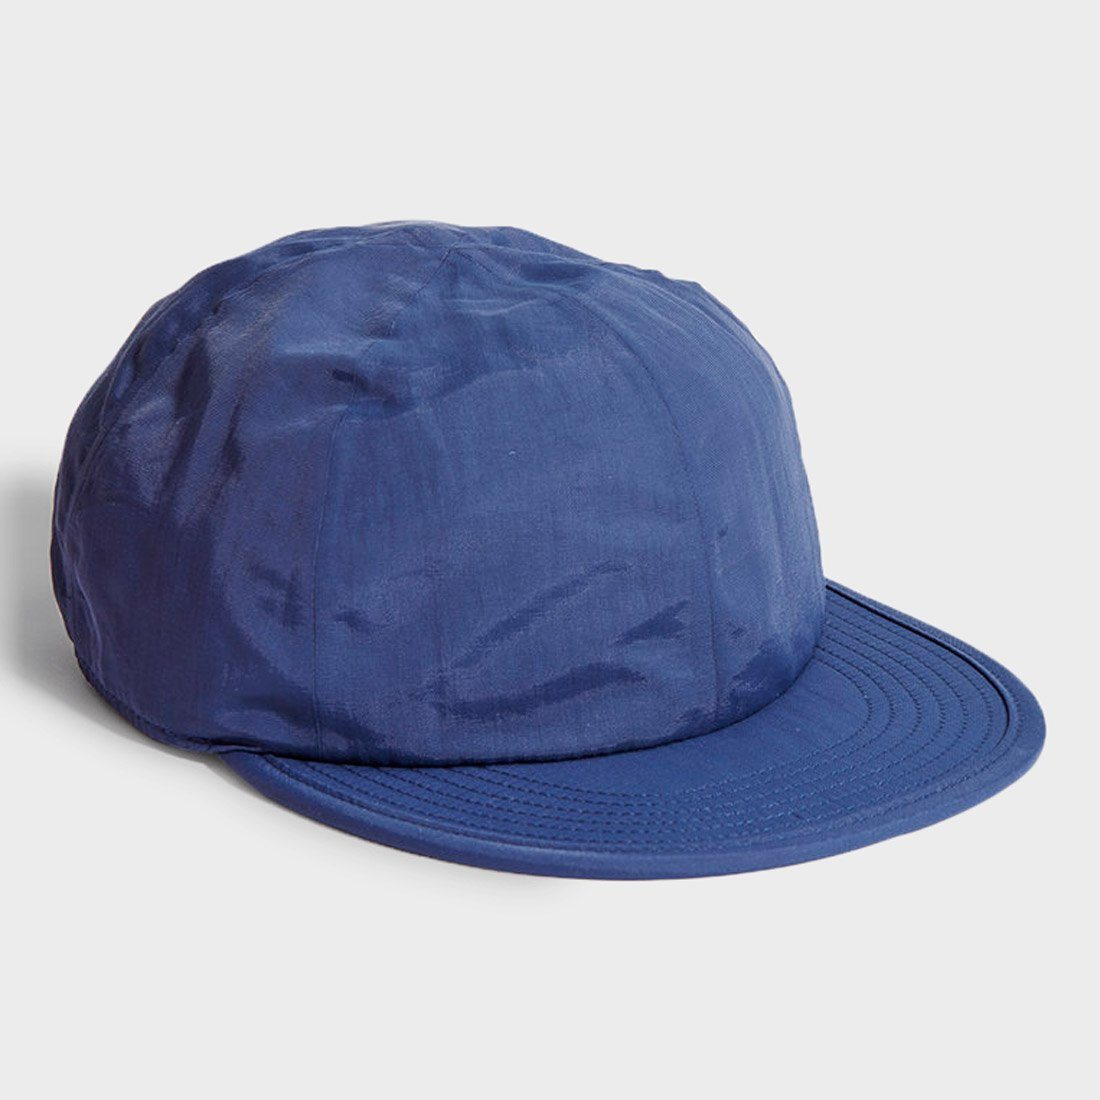 Saturday's NYC Canyon Bonded Hat Colbalt